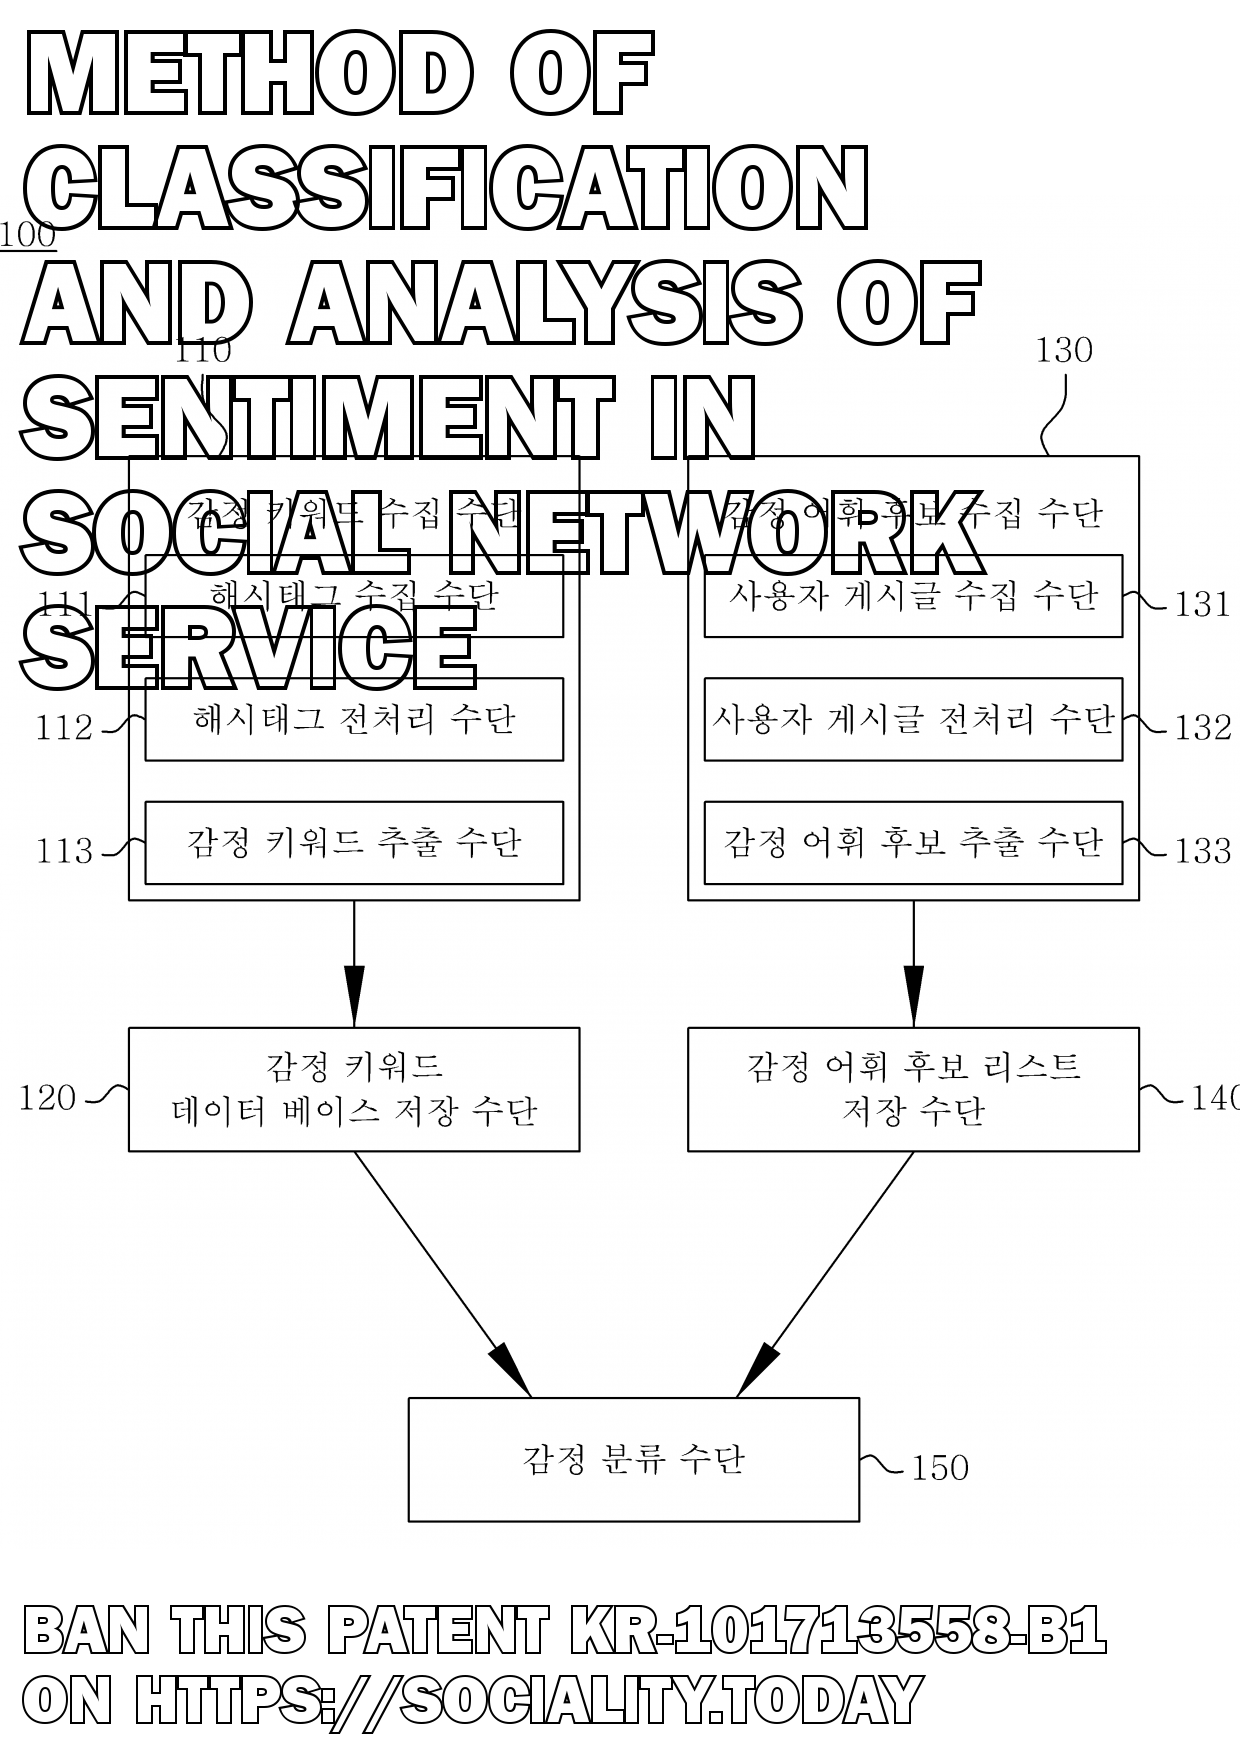 Method of classification and analysis of sentiment in social network service  - KR-101713558-B1